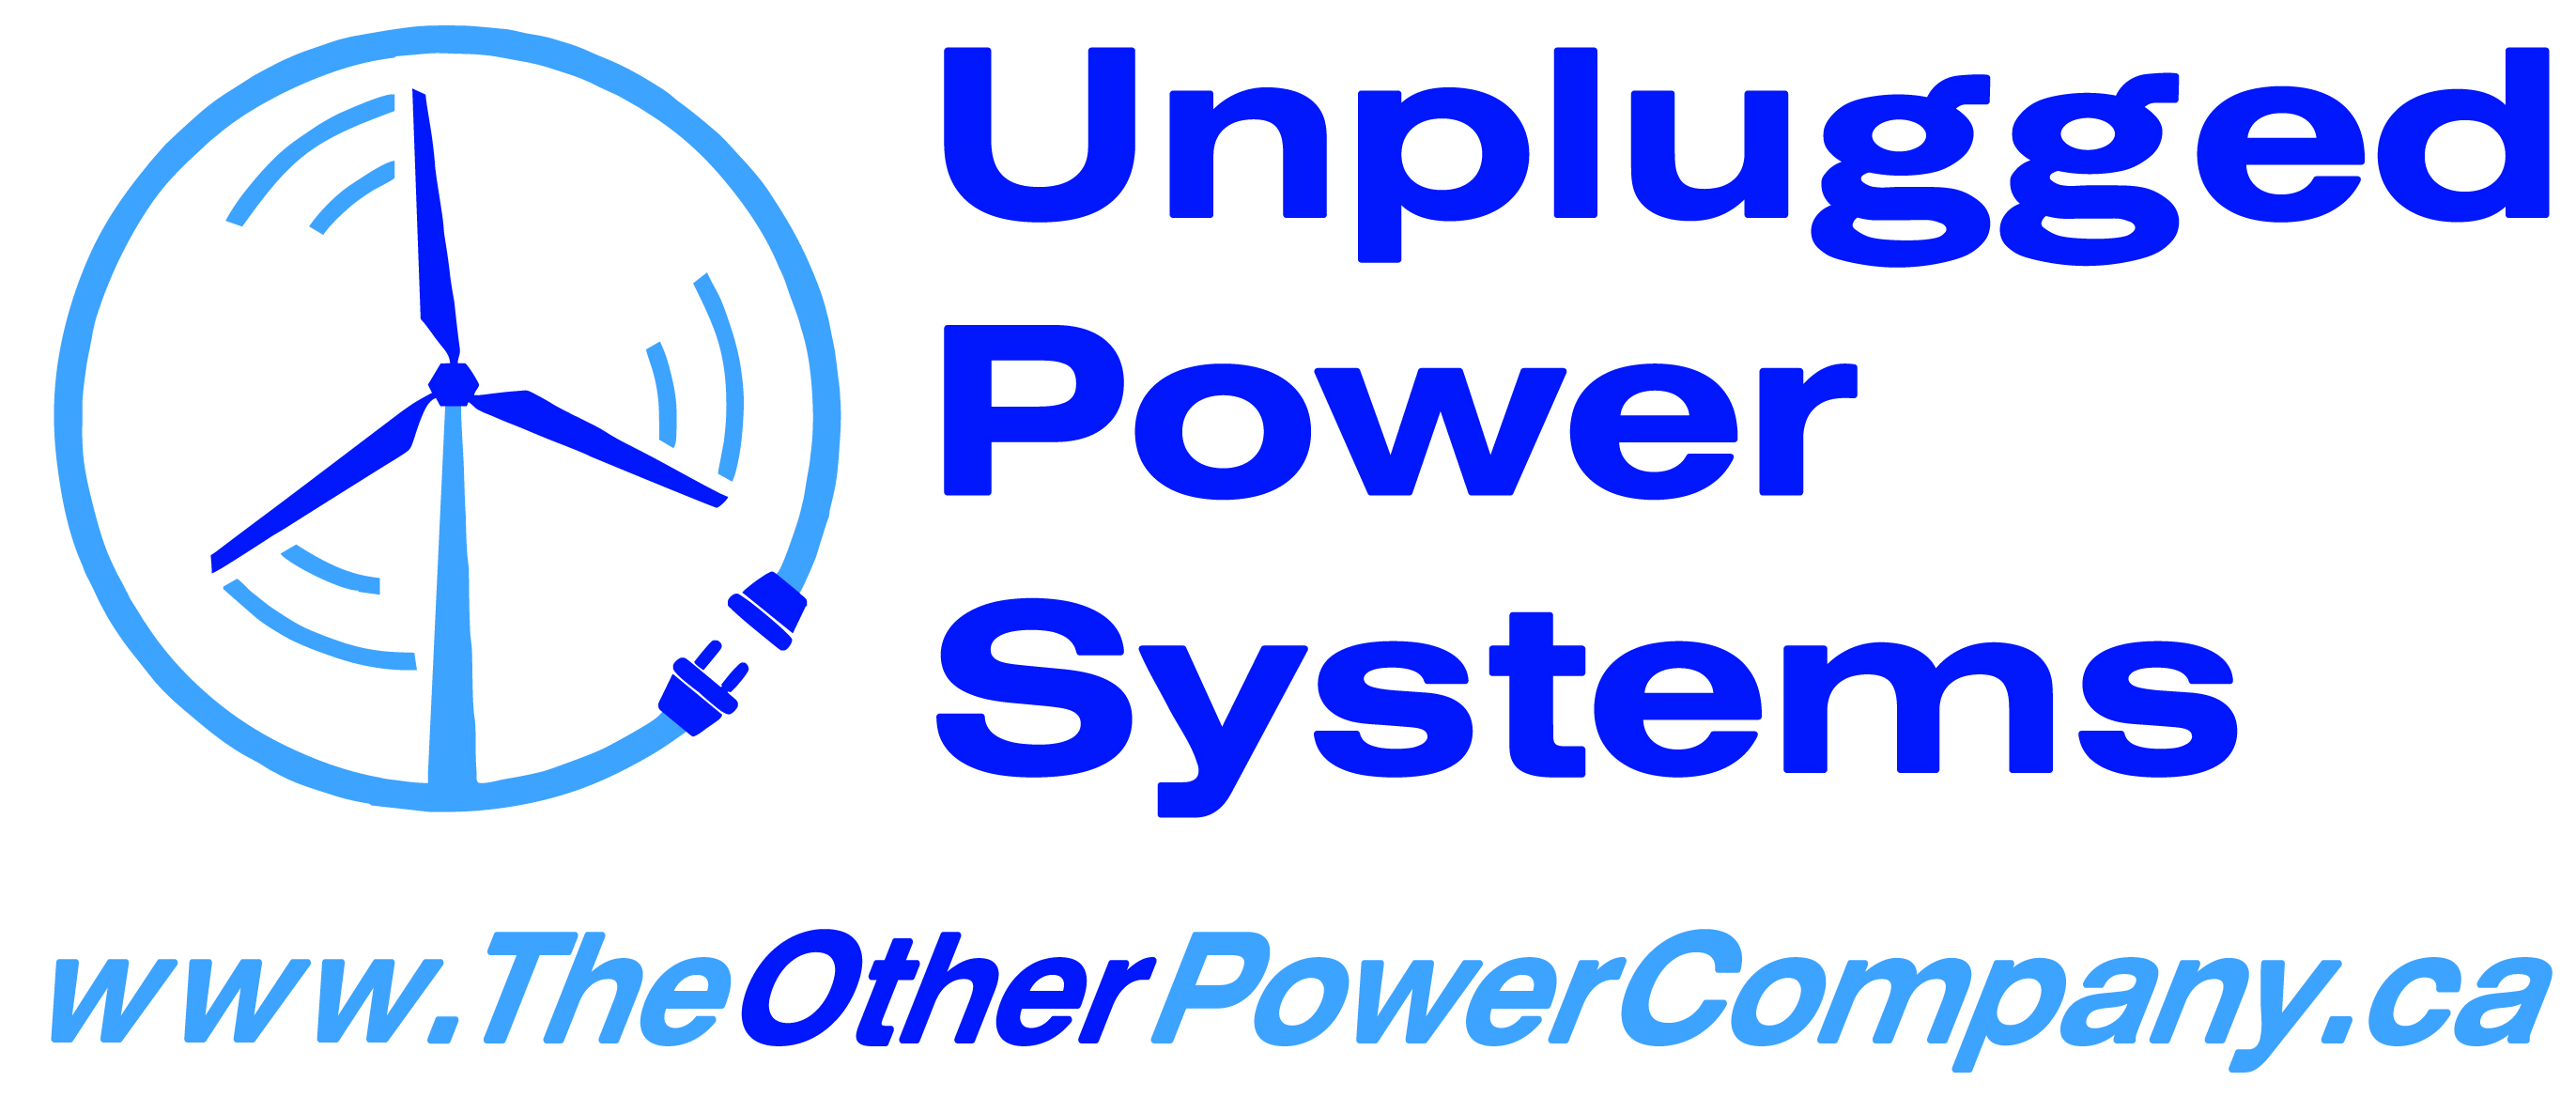 Unplugged Power Systems